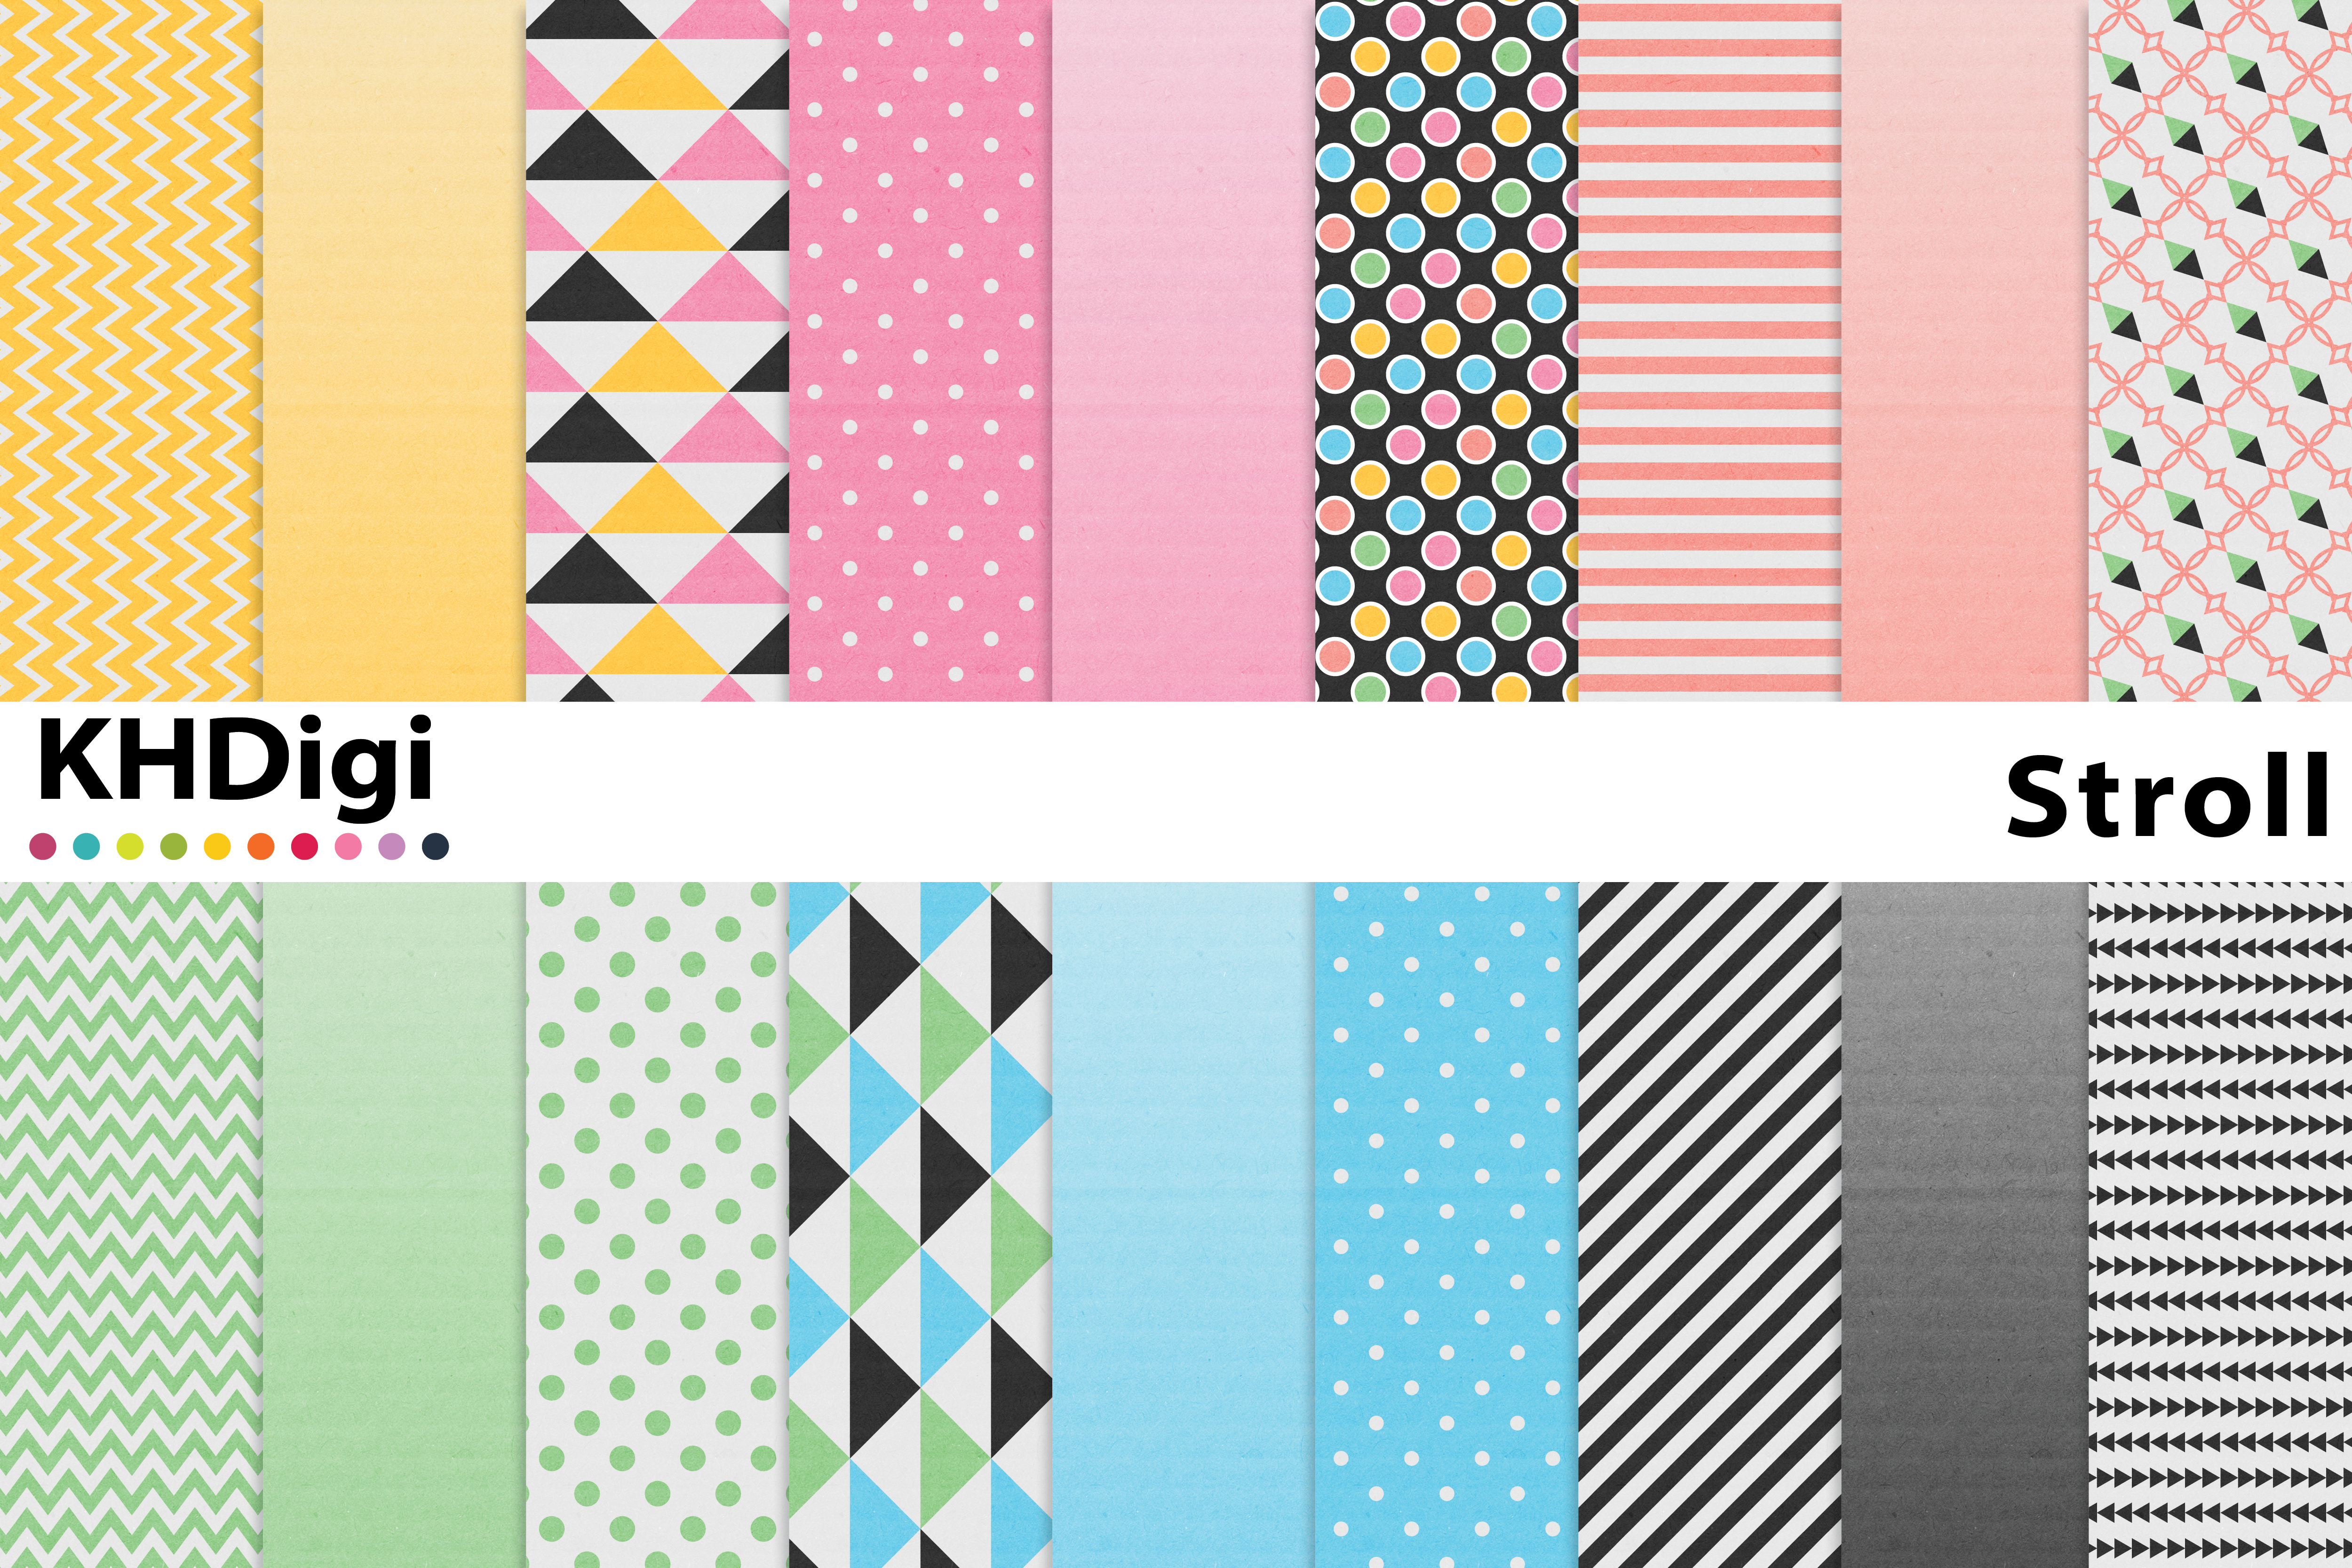 Download Free Stroll Digital Paper Textured Graphic By Khdigi Creative Fabrica for Cricut Explore, Silhouette and other cutting machines.